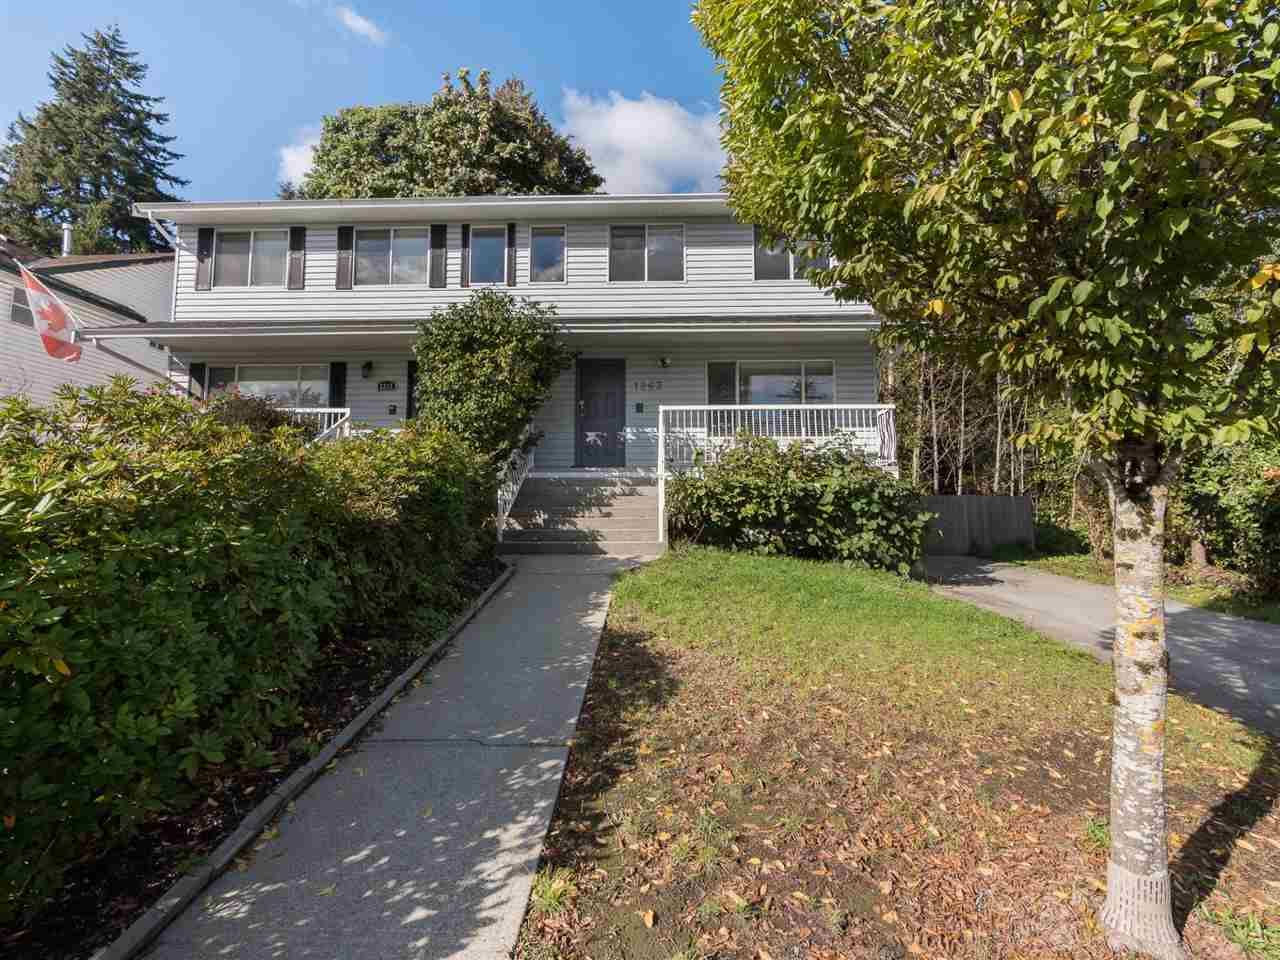 Main Photo: 1263 ROCHESTER Avenue in Coquitlam: Central Coquitlam 1/2 Duplex for sale : MLS®# R2310208